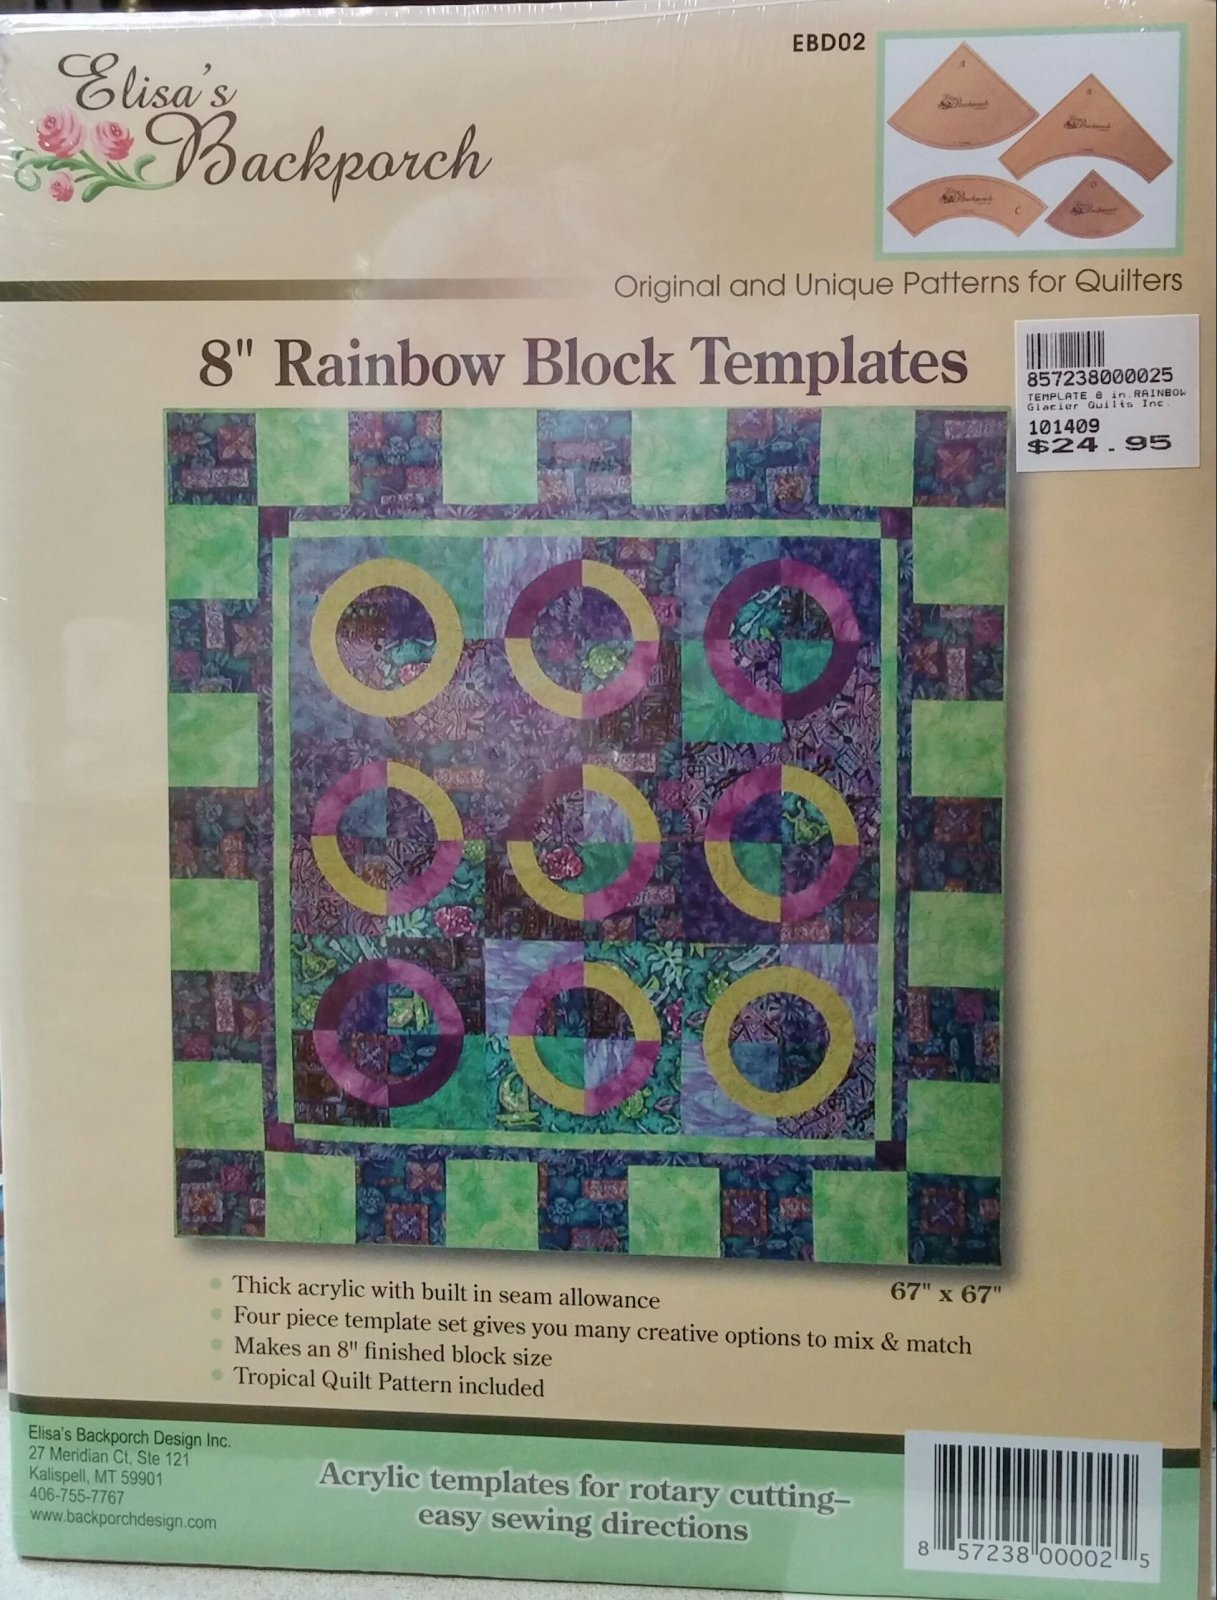 8 Rainbow Quilt Template from Elisa's Backporch Design